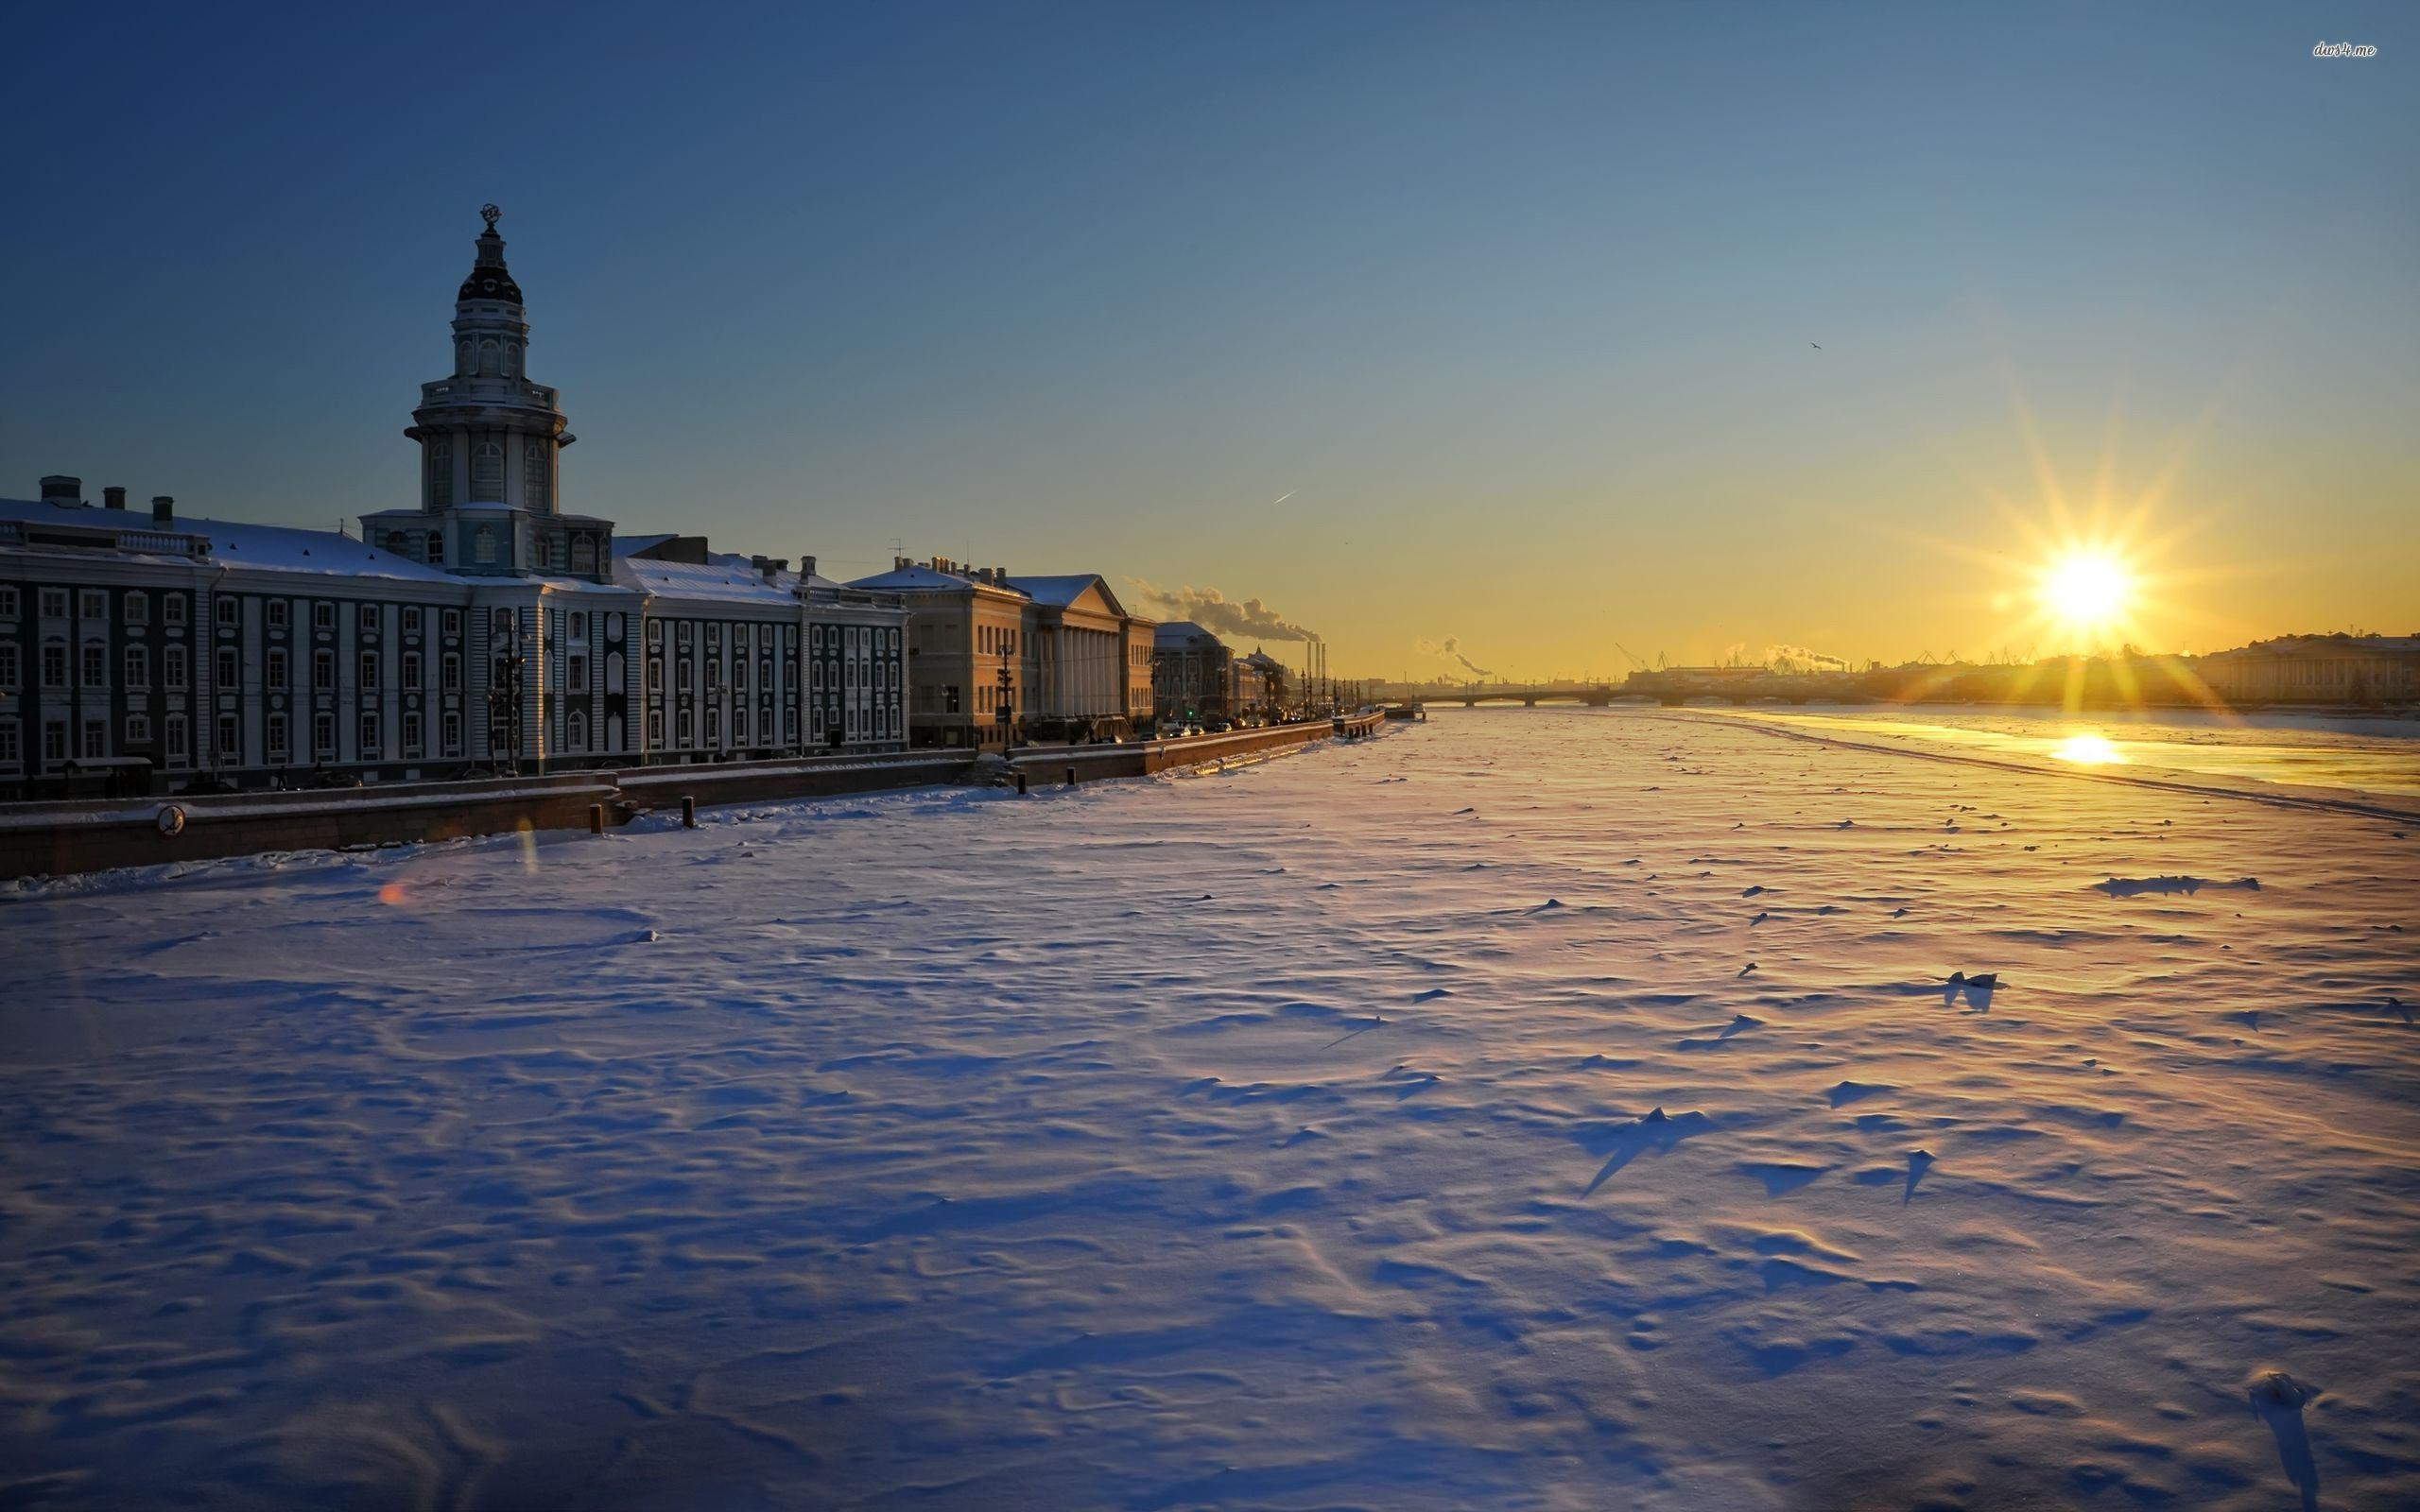 Winter in Saint Petersburg, Russia wallpaper - World wallpapers - #21853